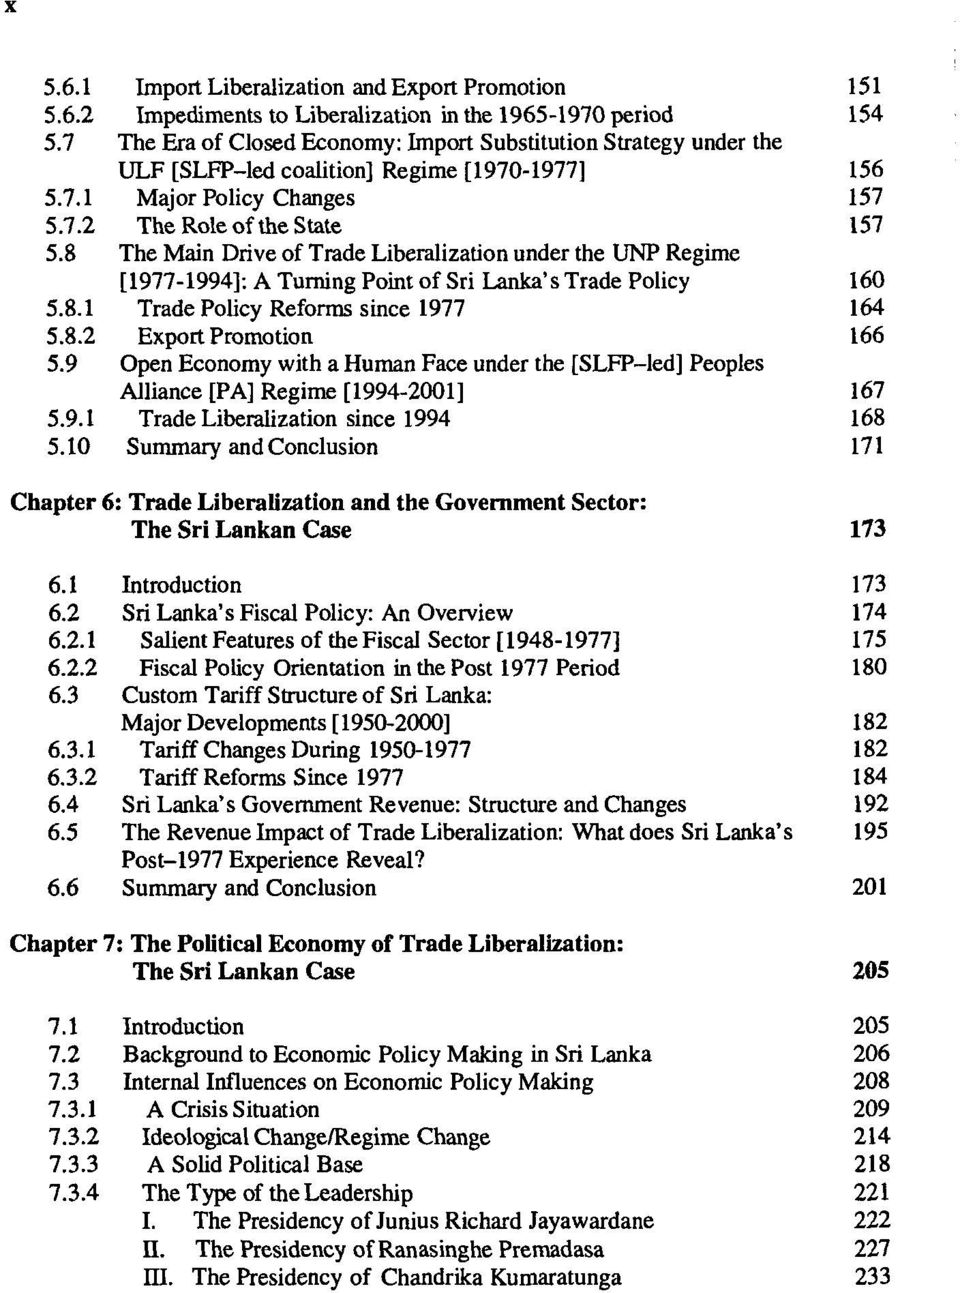 8 The Main Drive of Trade Liberalization under the UNP Regime [1977-1994]: A Turning Point of Sri Lanka's Trade Policy 160 5.8.1 Trade Policy Reforms since 1977 164 5.8.2 Export Promotion 166 5.